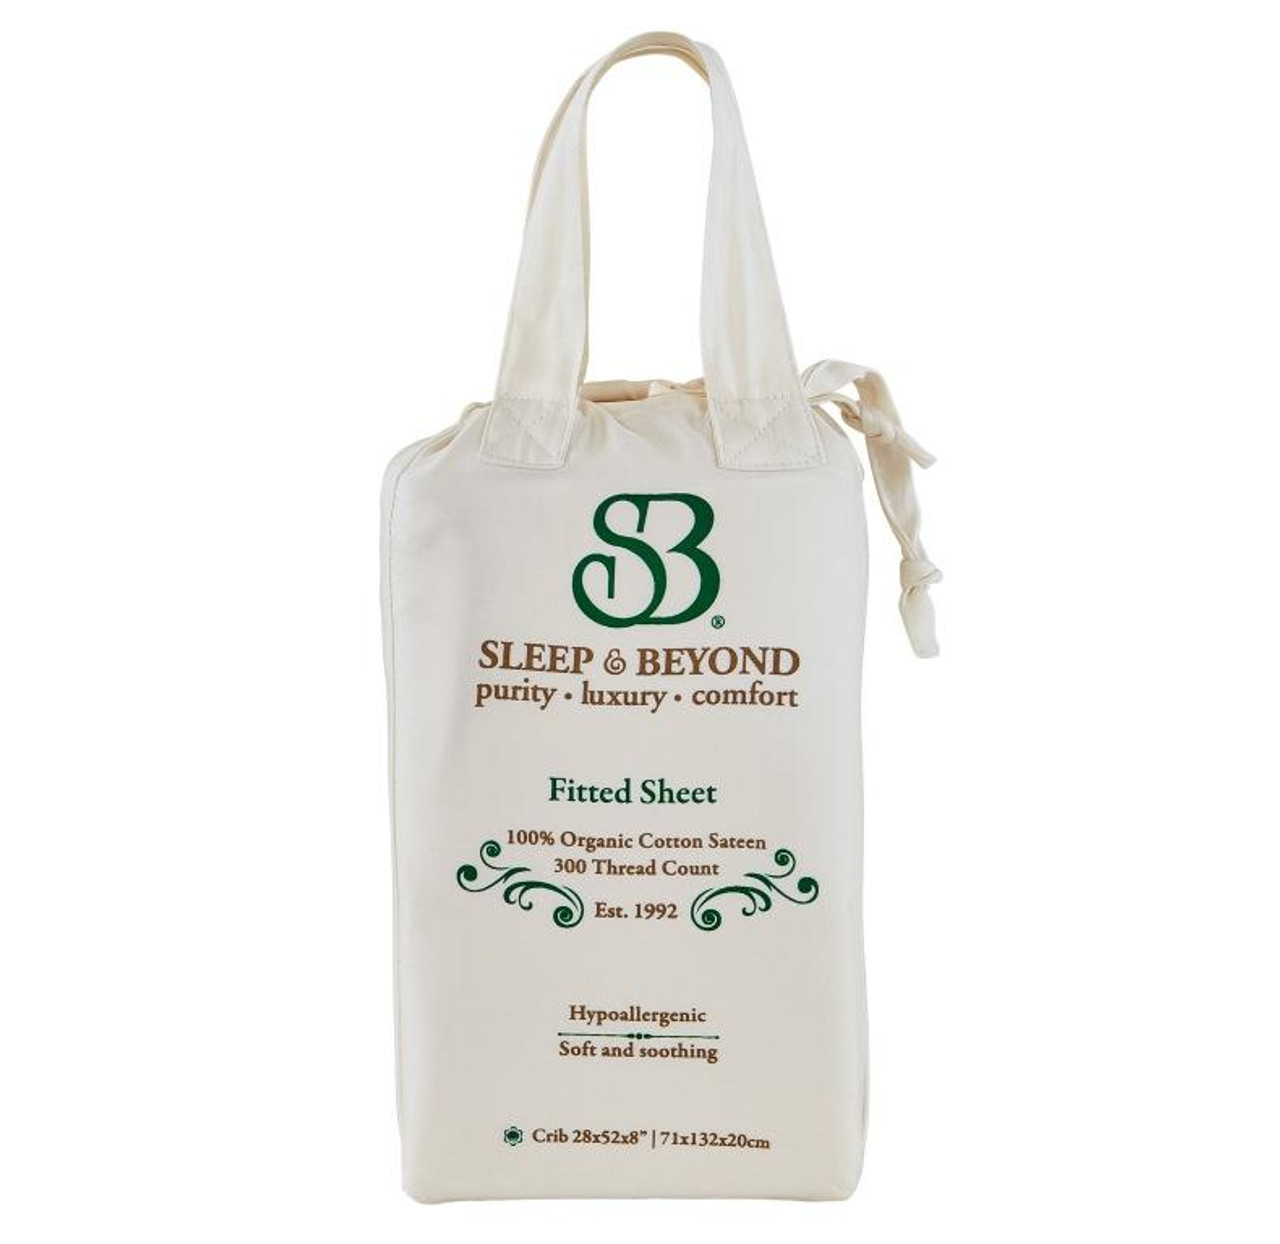 Sleep & Beyond 100% Organic Cotton Fitted Sheet Only Packaging